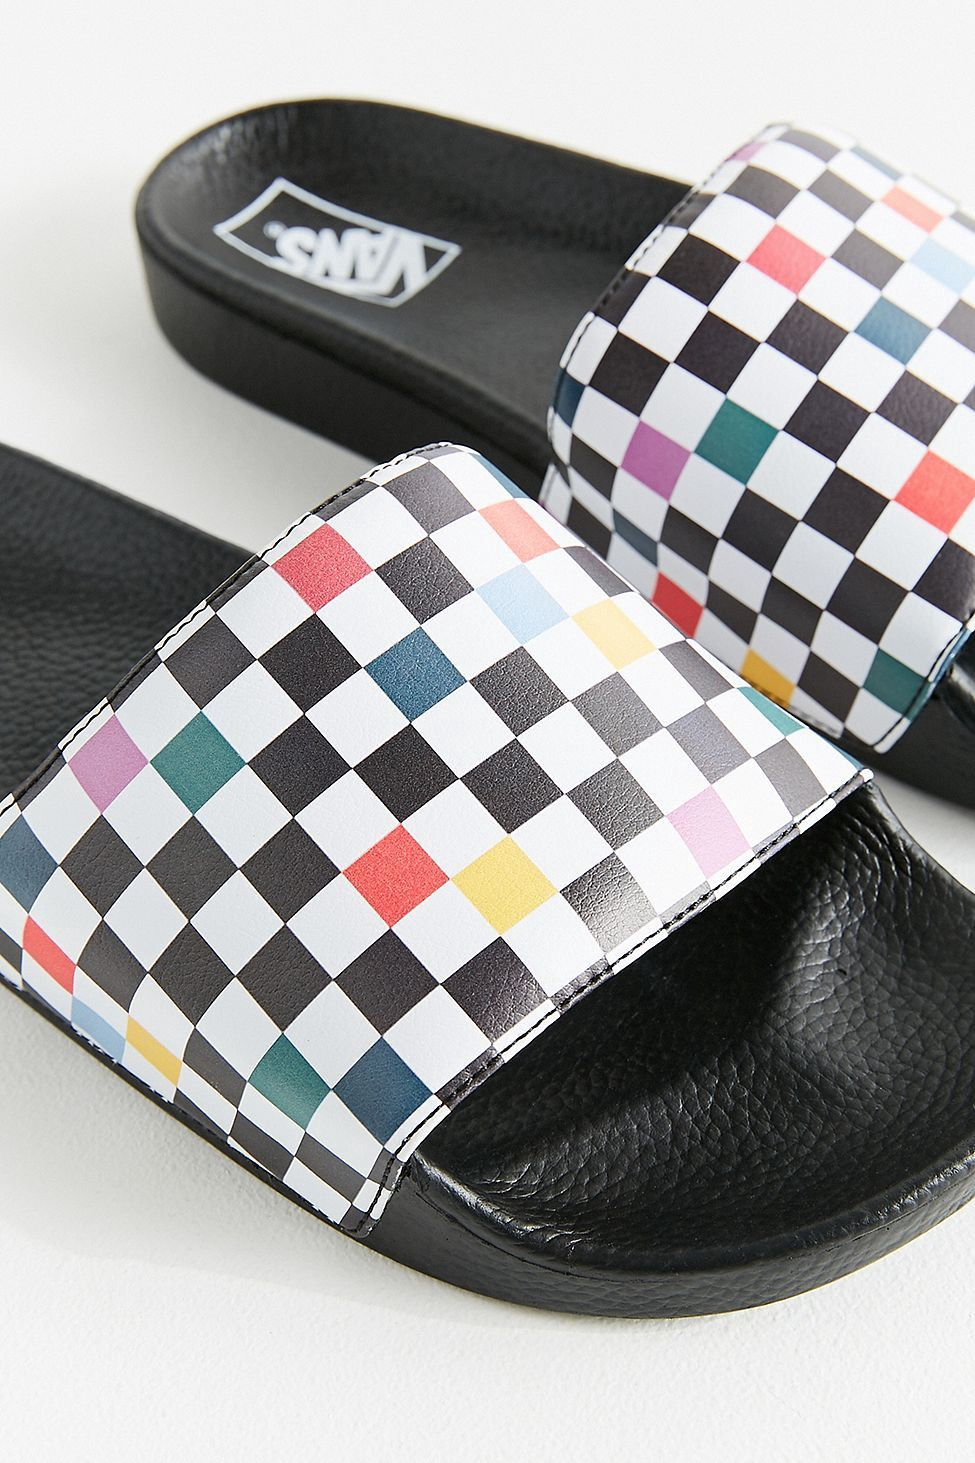 dd6c8c682262 Urban Outfitters Vans Party Checkerboard Pool Slide - W 9.5 M 8 ...